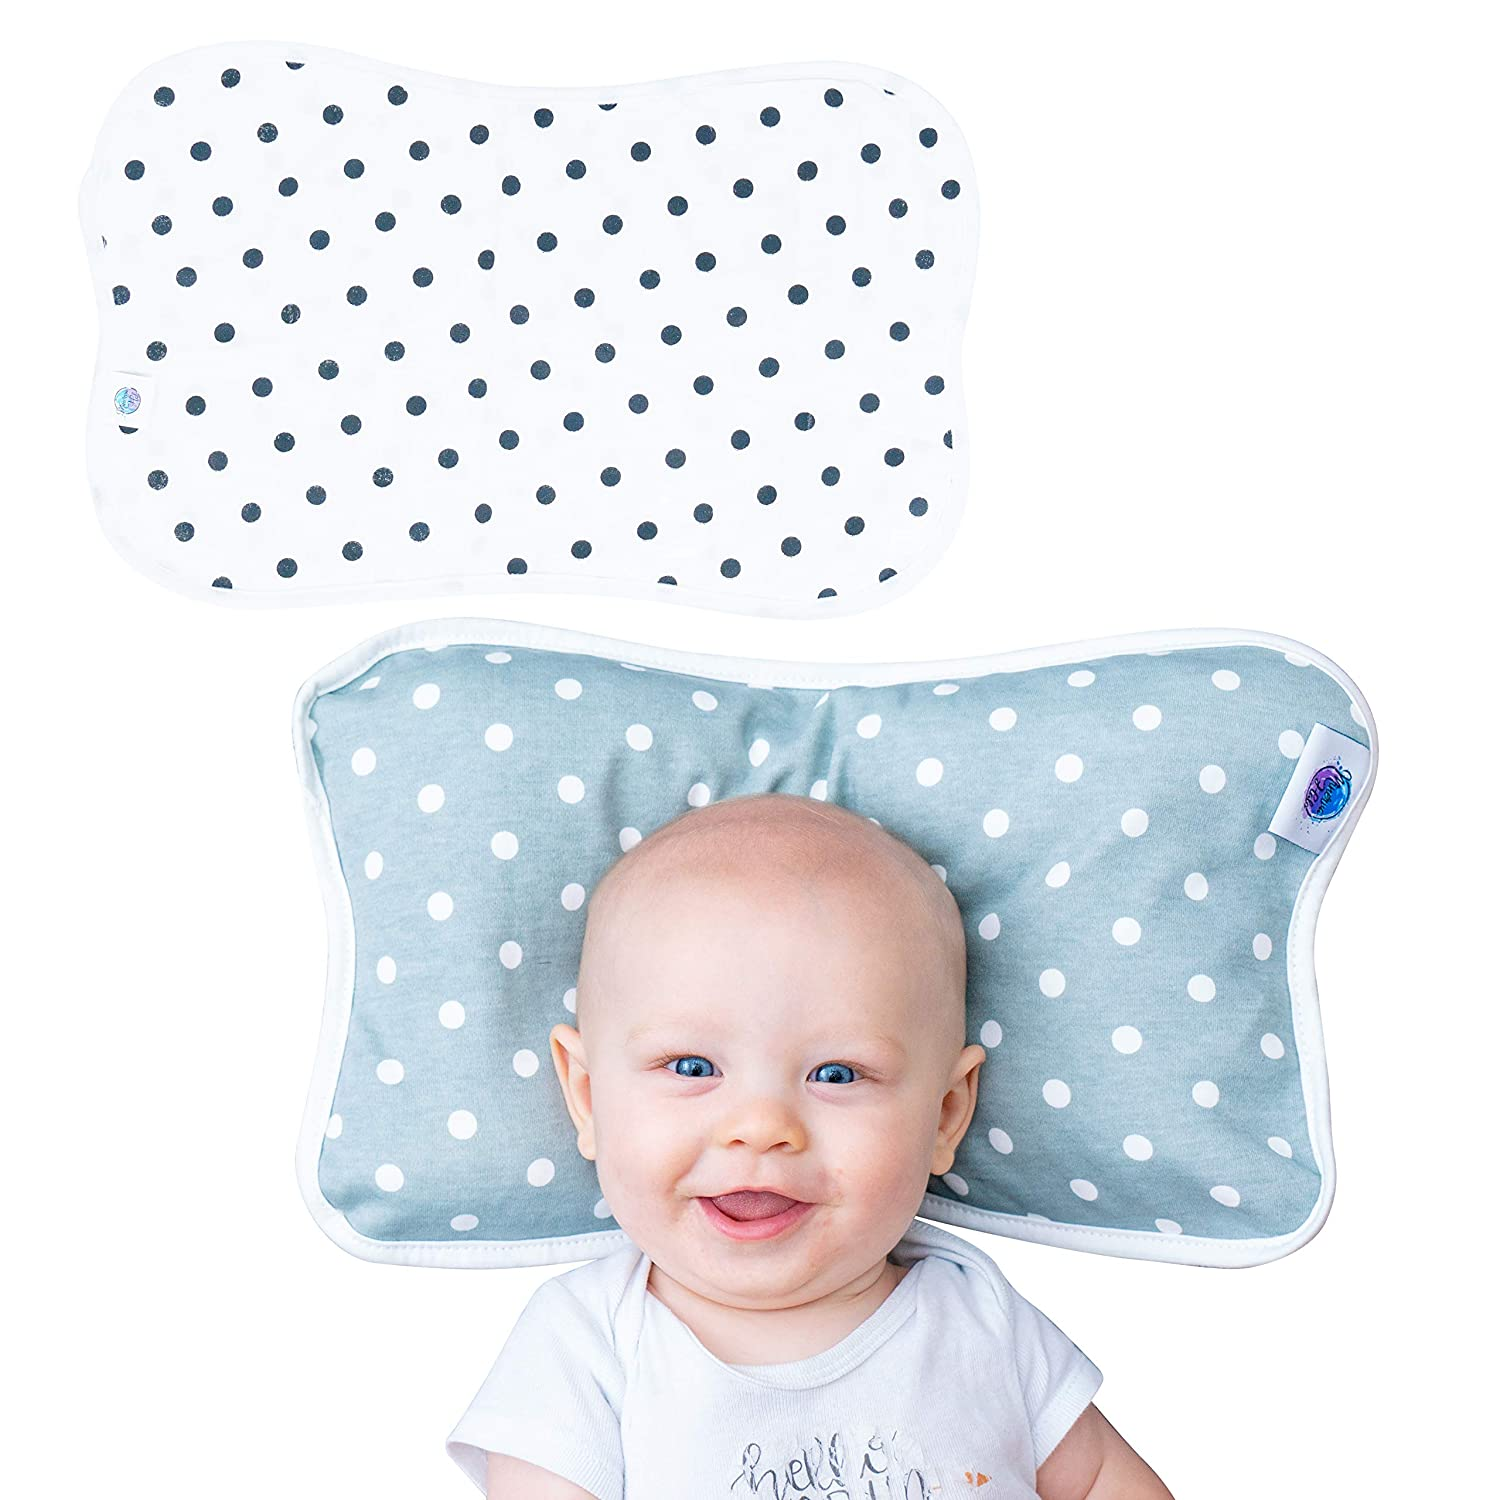 Newborn Baby Pillow Includes Free Pillow Cases 100% Cotton | Breathable Pillow for Better Sleep |Excellent Gift Set for Baby Shower | Prevents Flat Head or Plagiocephaly New millineum